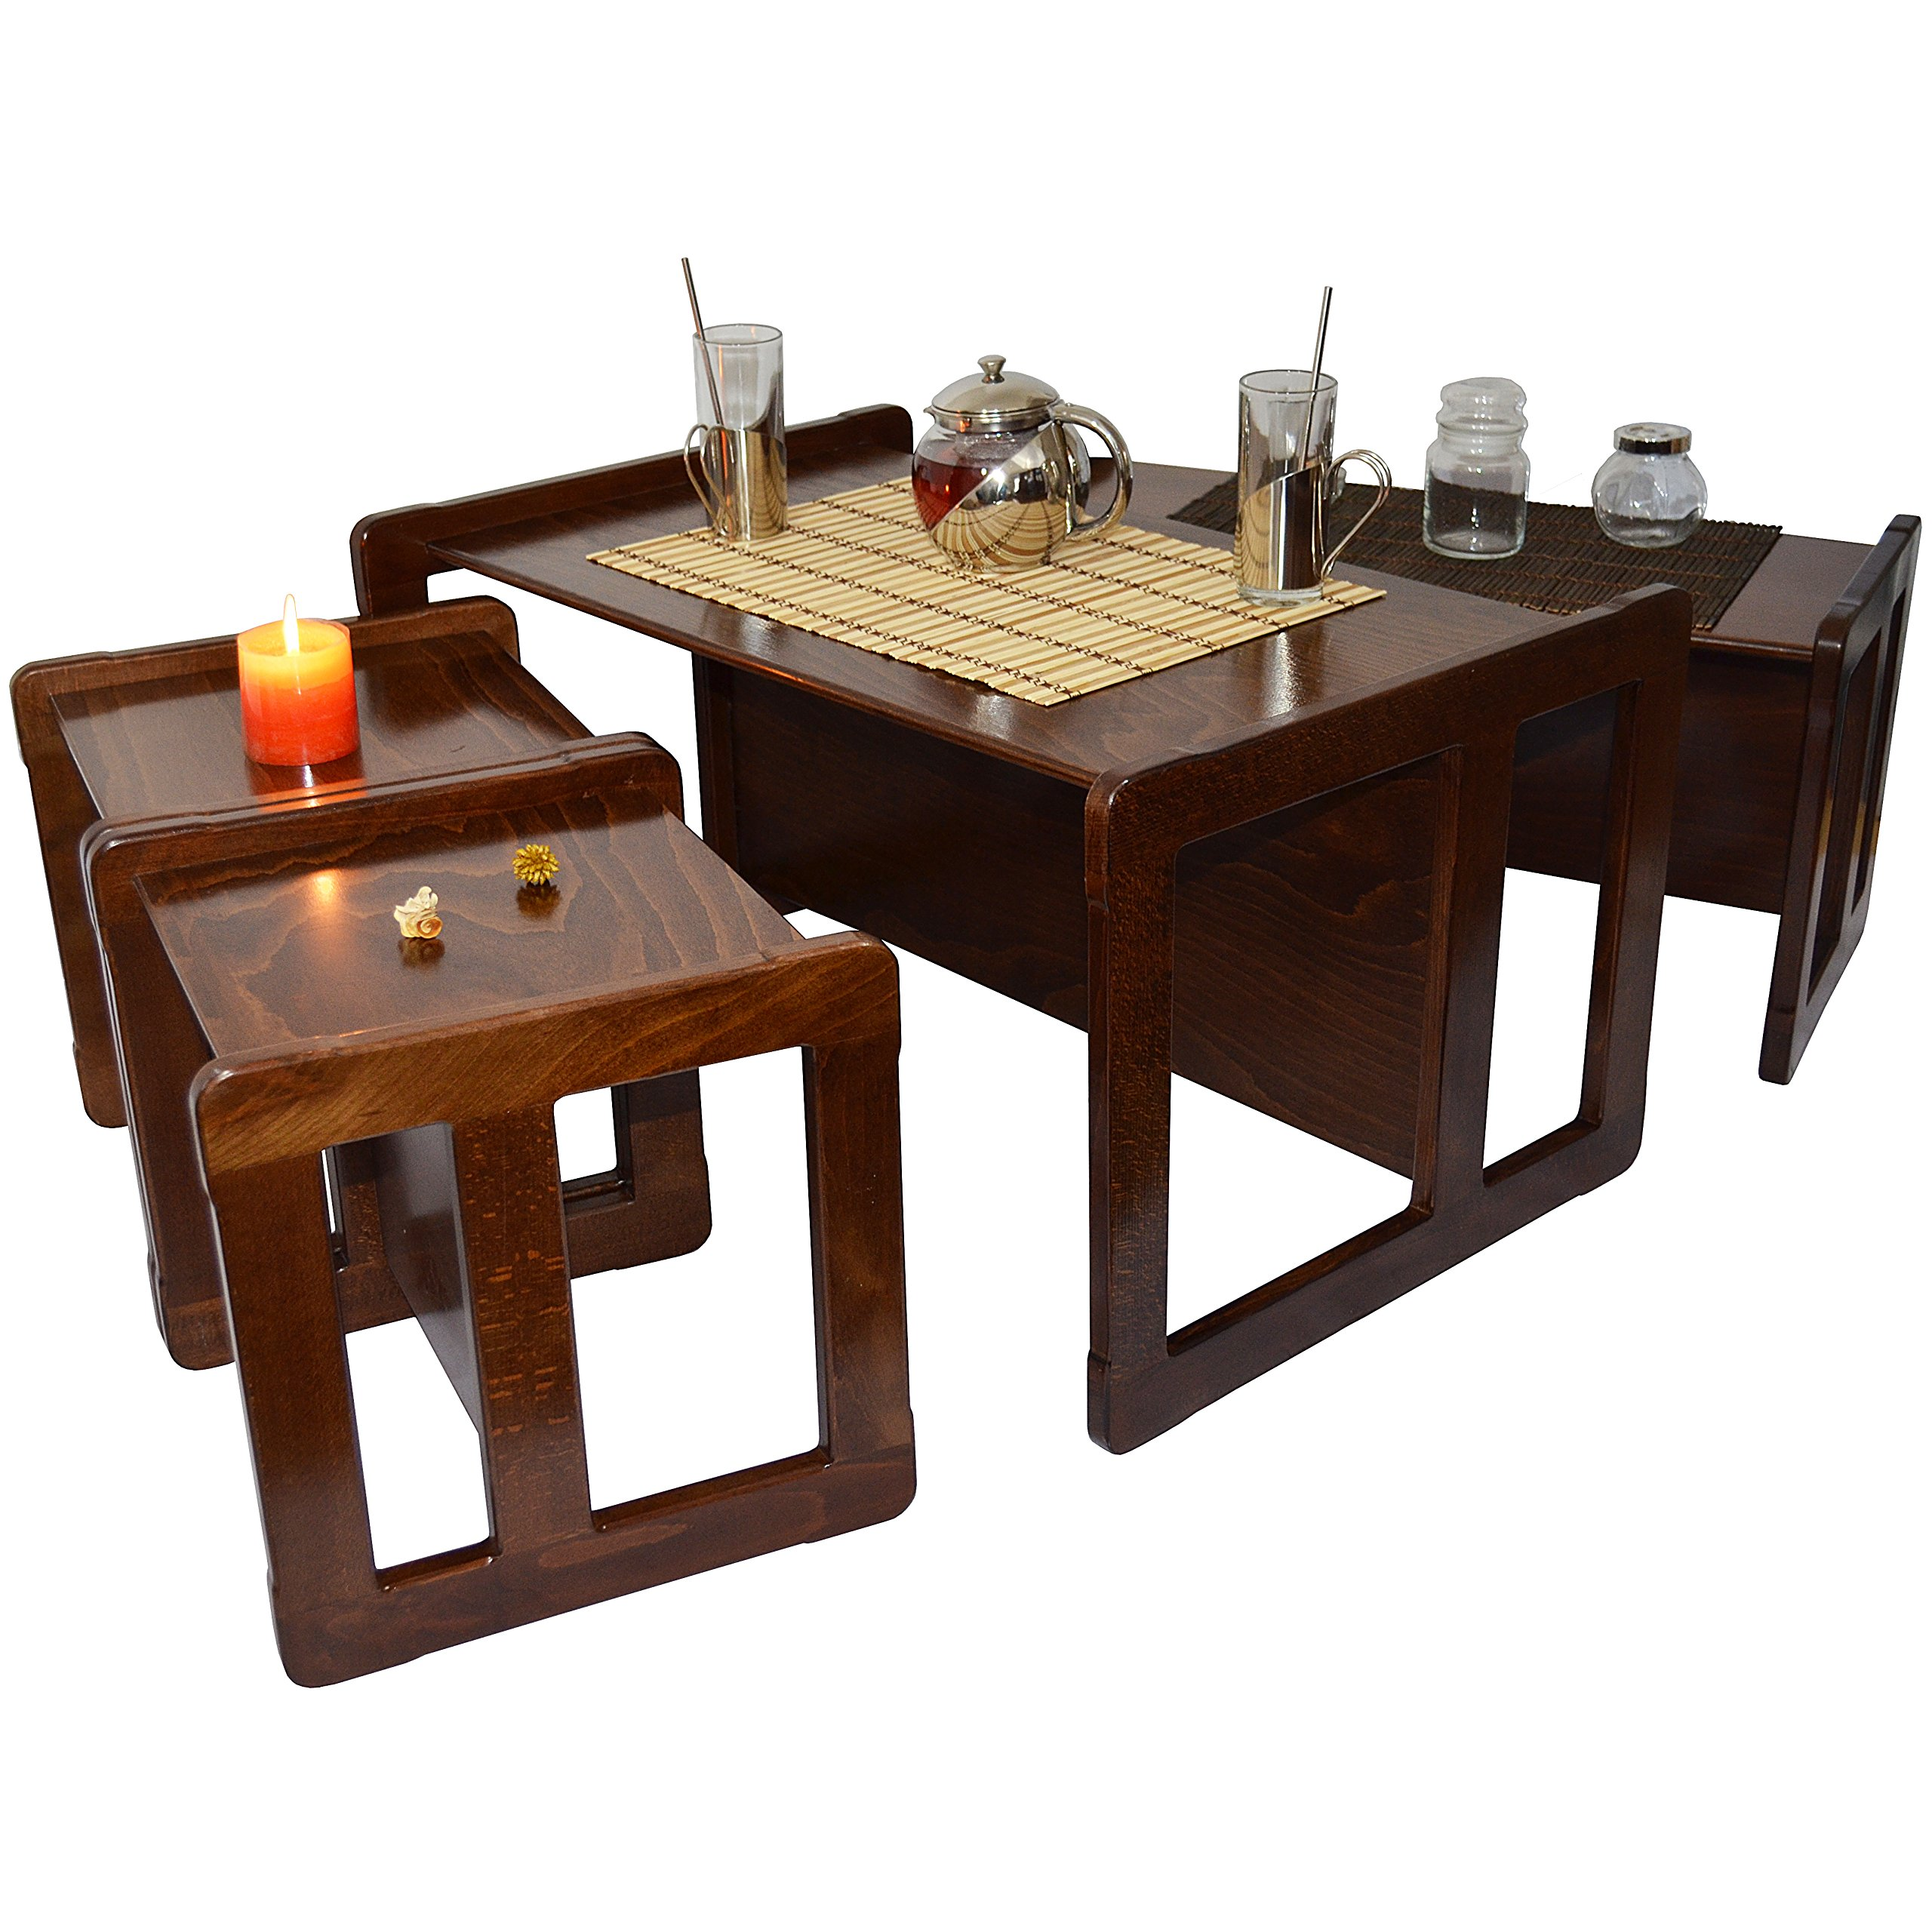 3 in 1 Adults Multifunctional Nest of Coffee Tables Set of 4 or Childrens Furniture Set of 4, 2 Small Chairs or Tables and 1 Small Bench or Table and 1 Large Bench or Table Beech Wood, Dark Stained